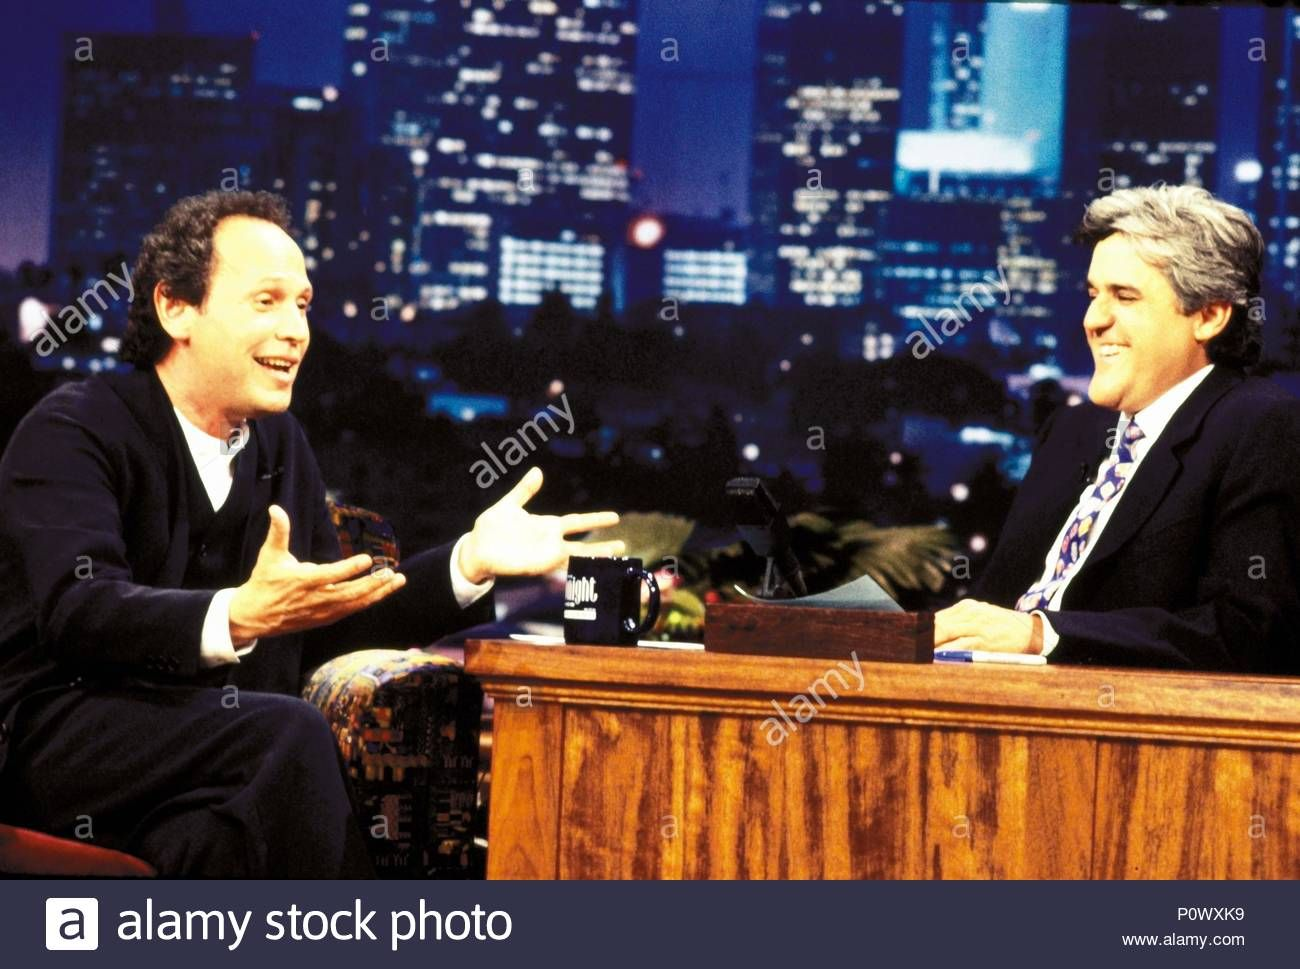 Download this stock image: original film title: tonight show whith.